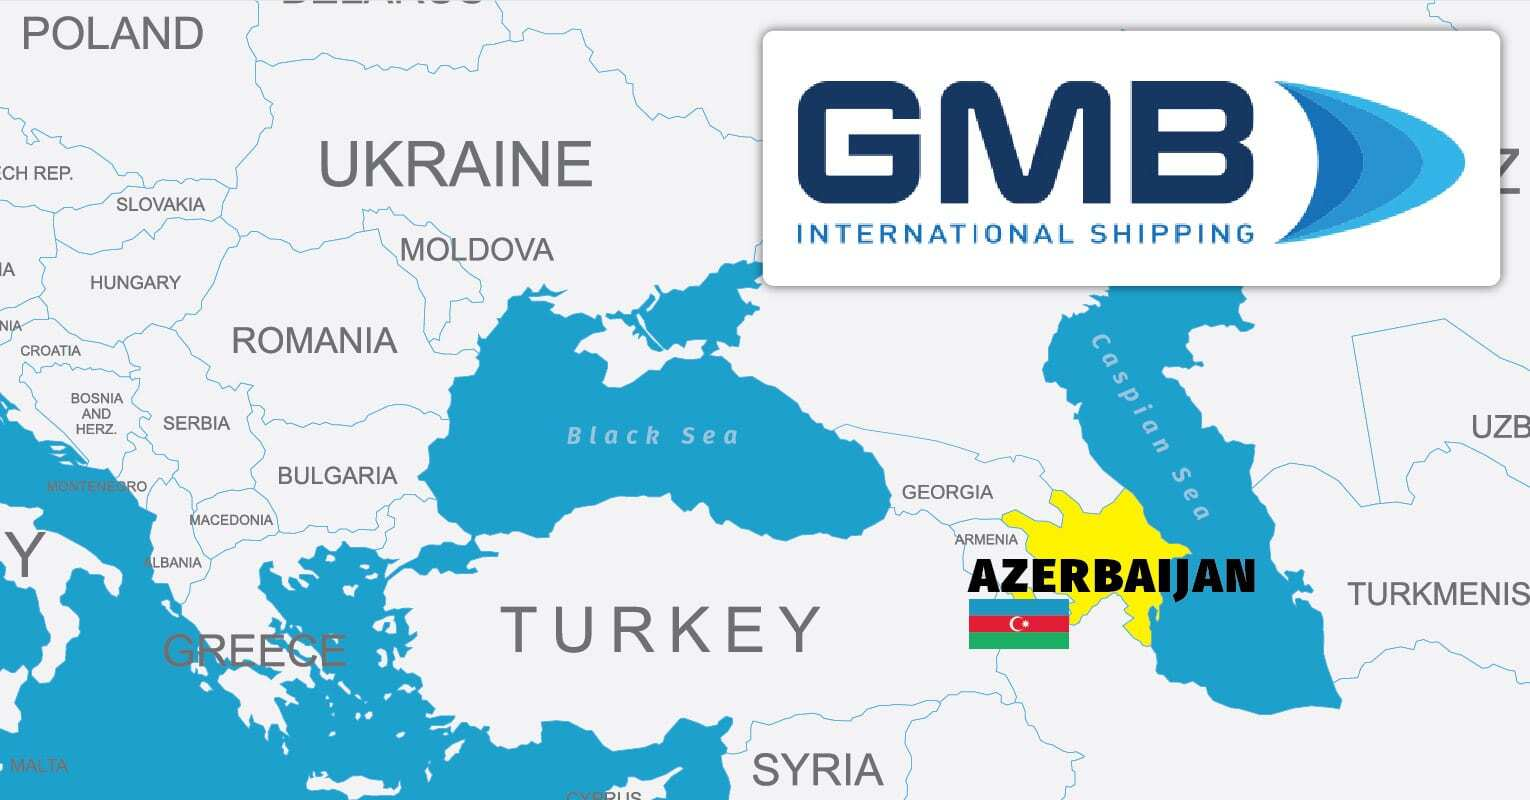 New member representing Azerbaijan – G M B International Shipping